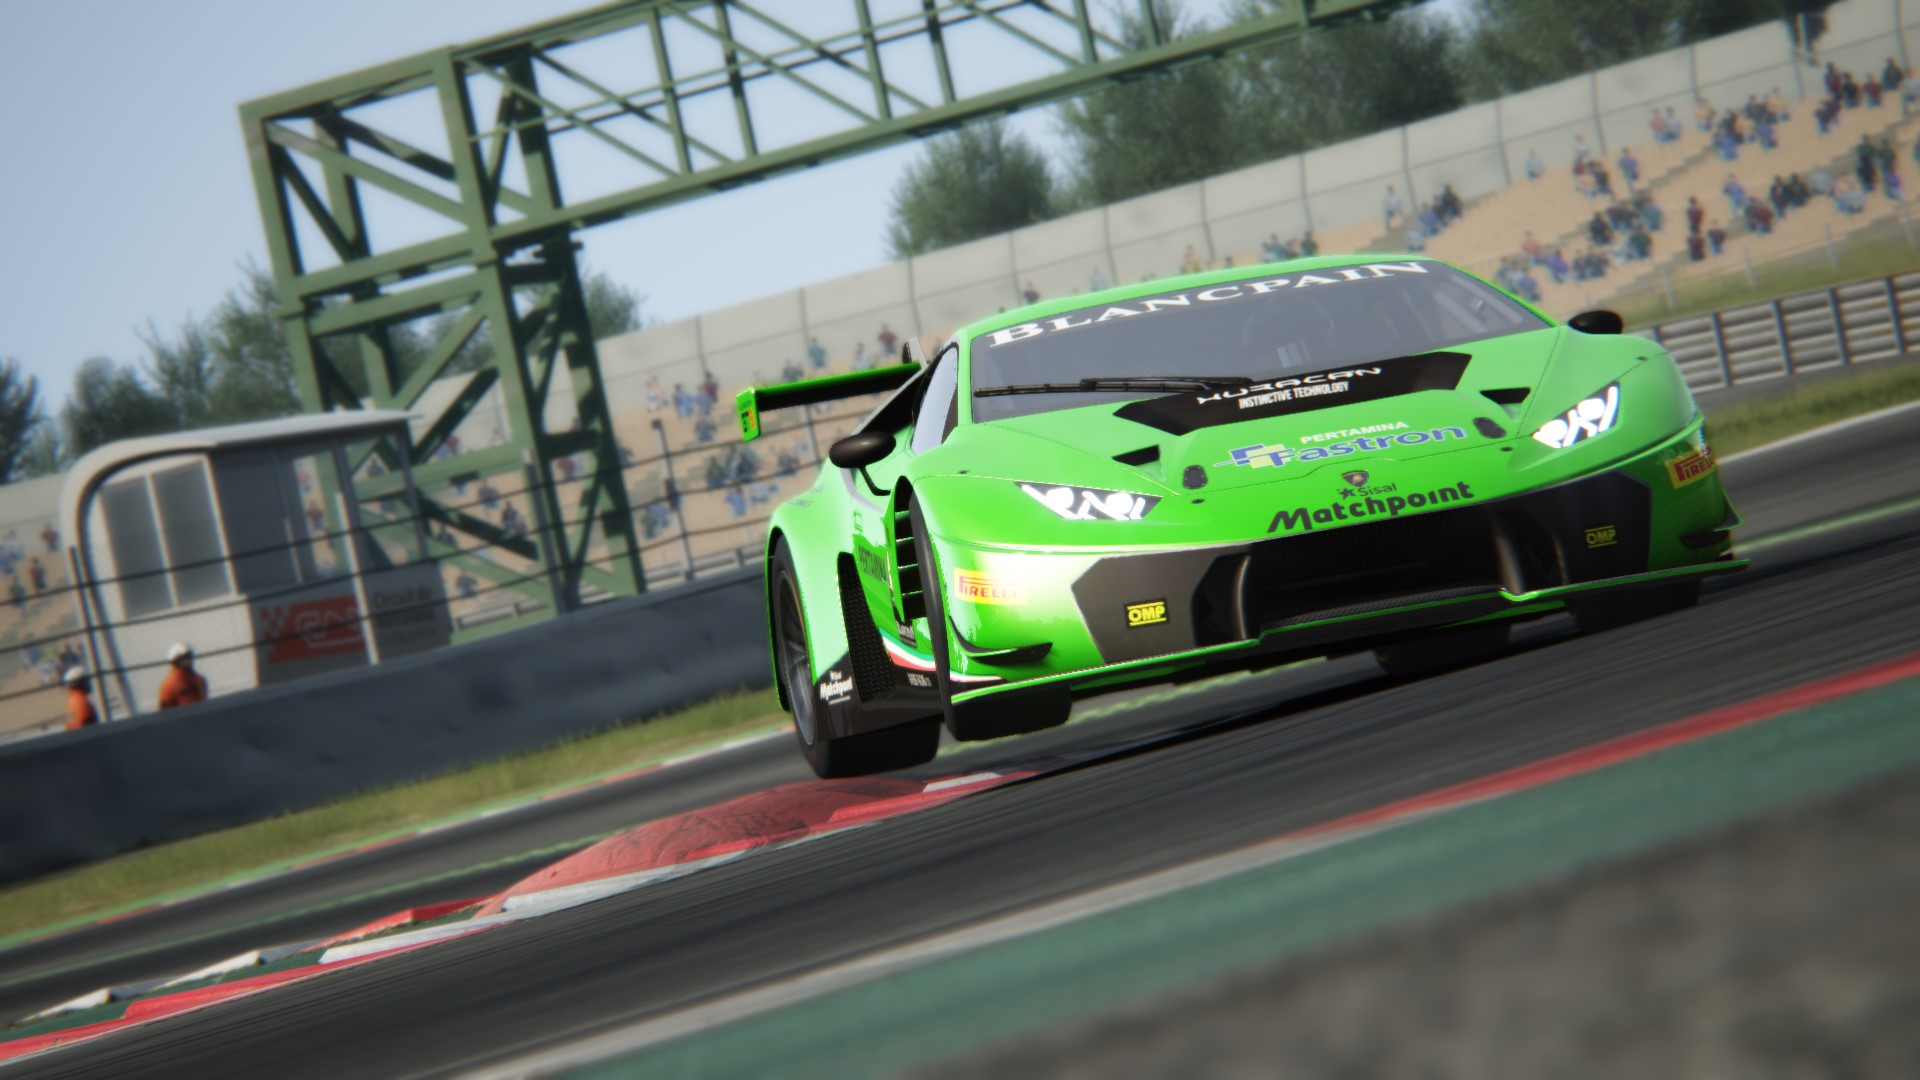 assetto corsa lamborghini huracan gt3 by maxoulepilote. Black Bedroom Furniture Sets. Home Design Ideas